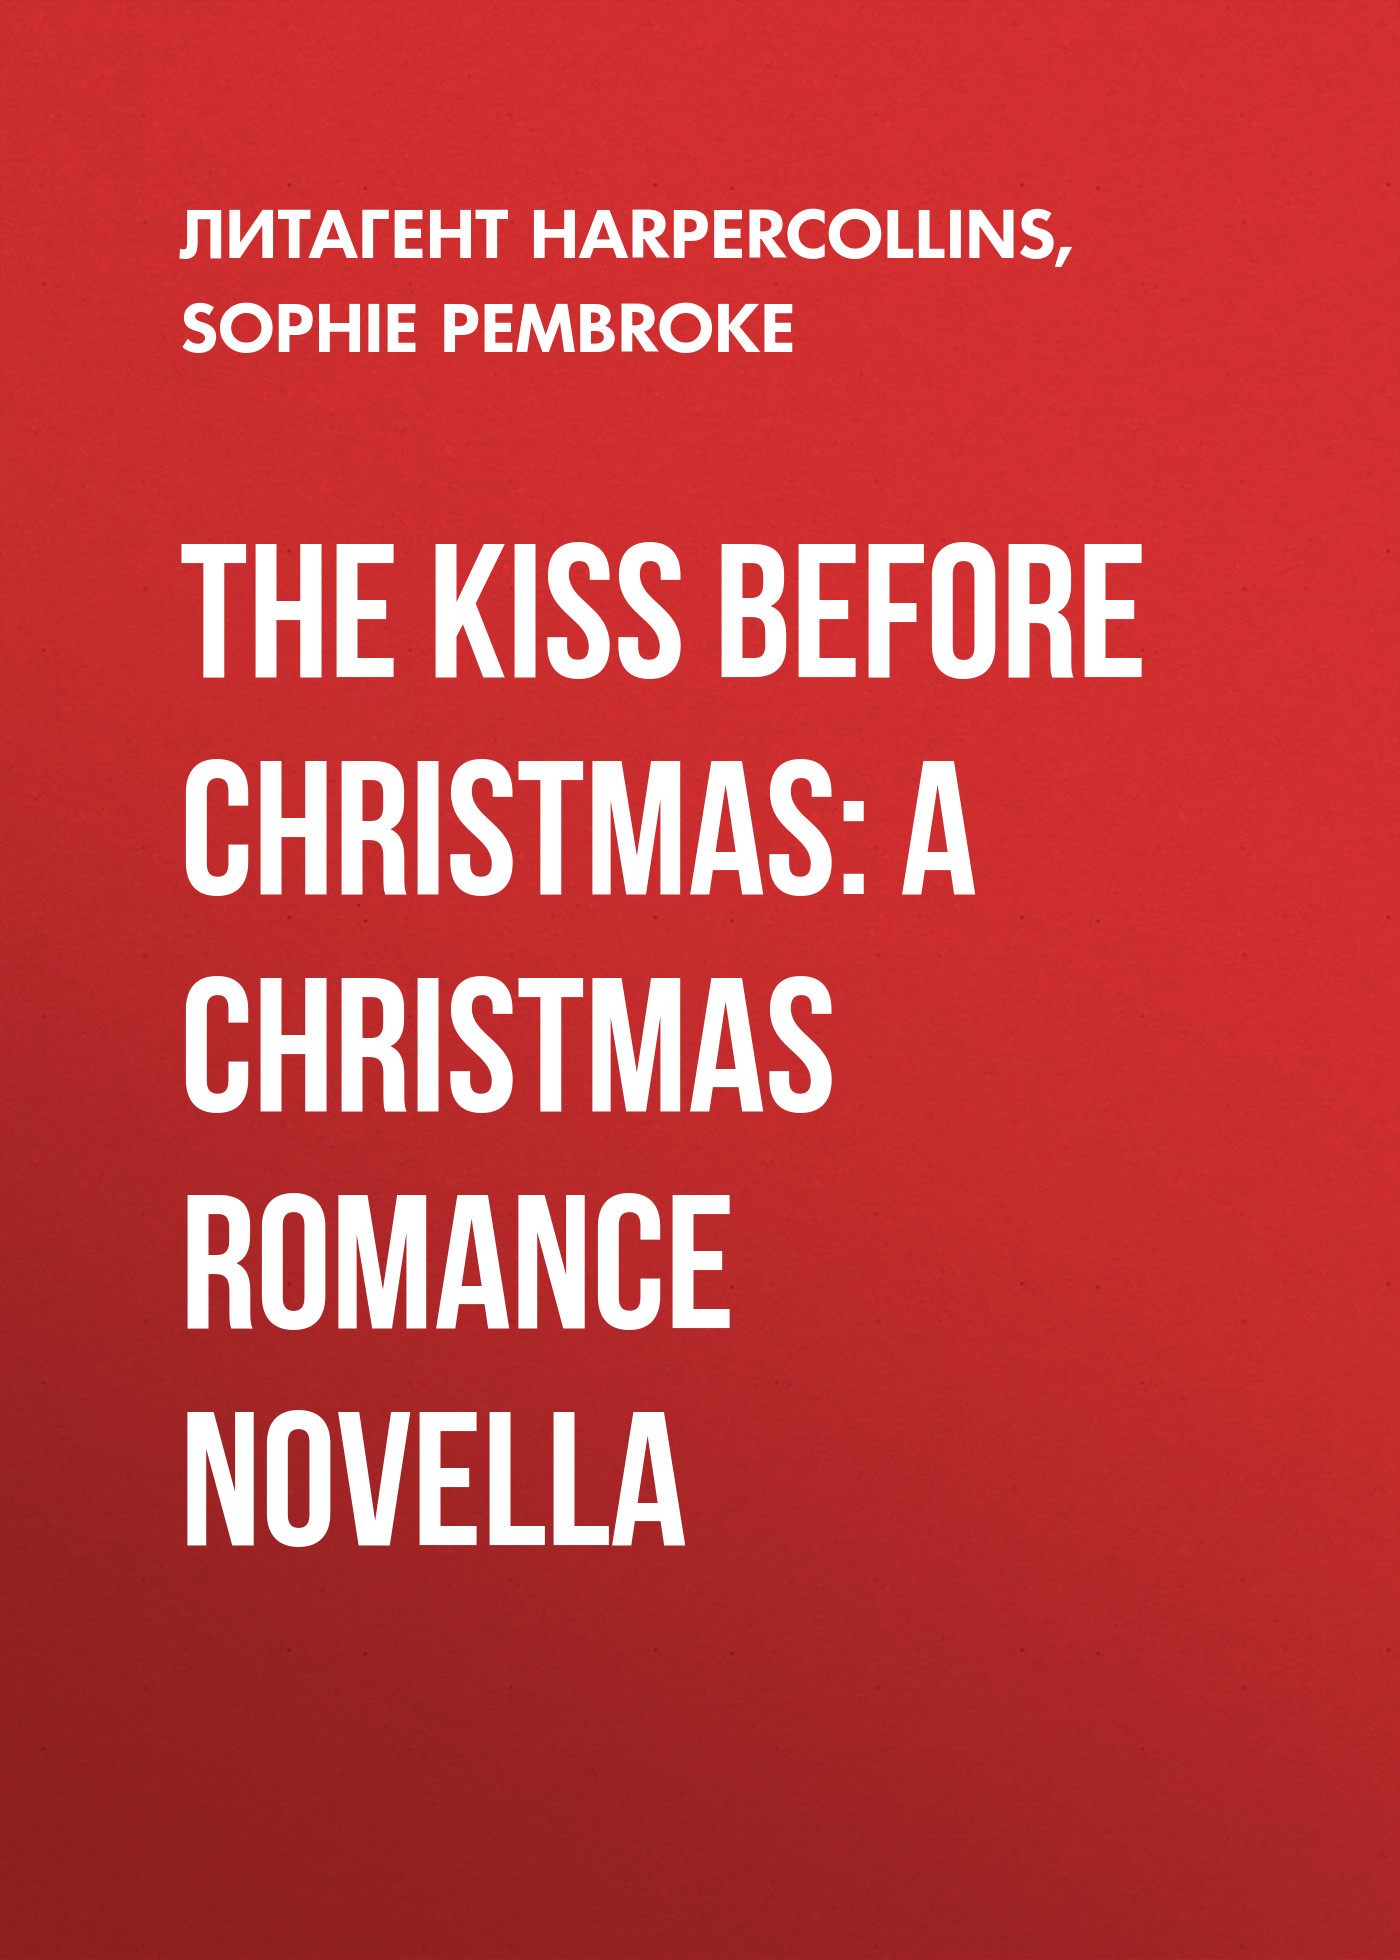 Sophie Pembroke The Kiss Before Christmas: A Christmas Romance Novella twas the night before christmas